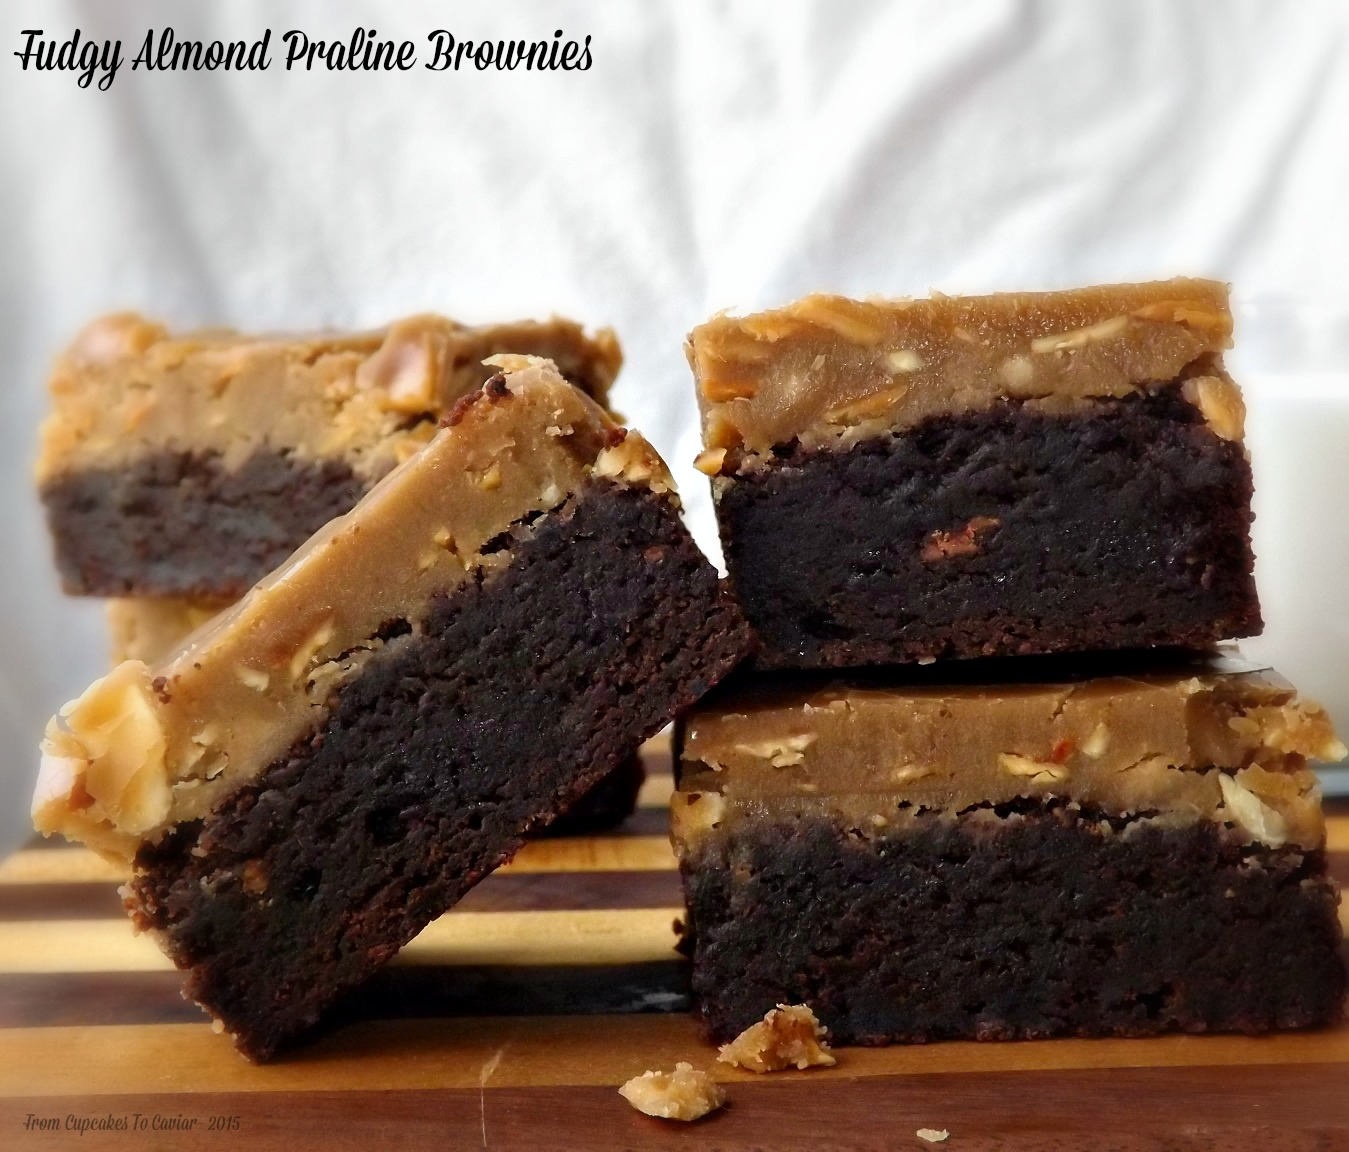 Fudgy Almond Praline Brownies